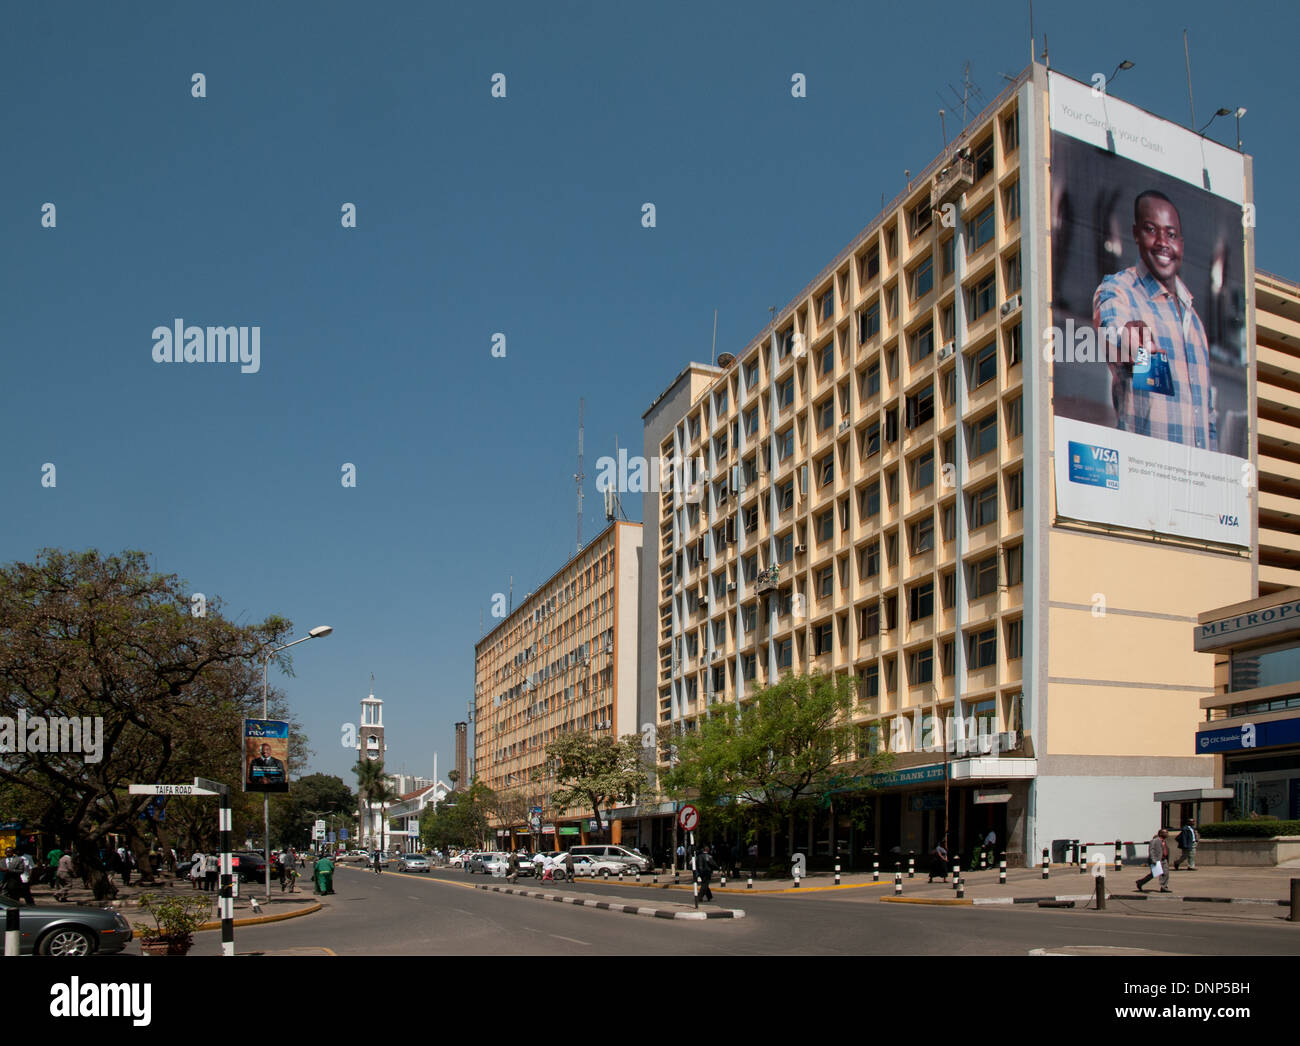 City Hall Way with high rise multi storey buildings and Trans National Plaza in Nairobi Kenya - Stock Image